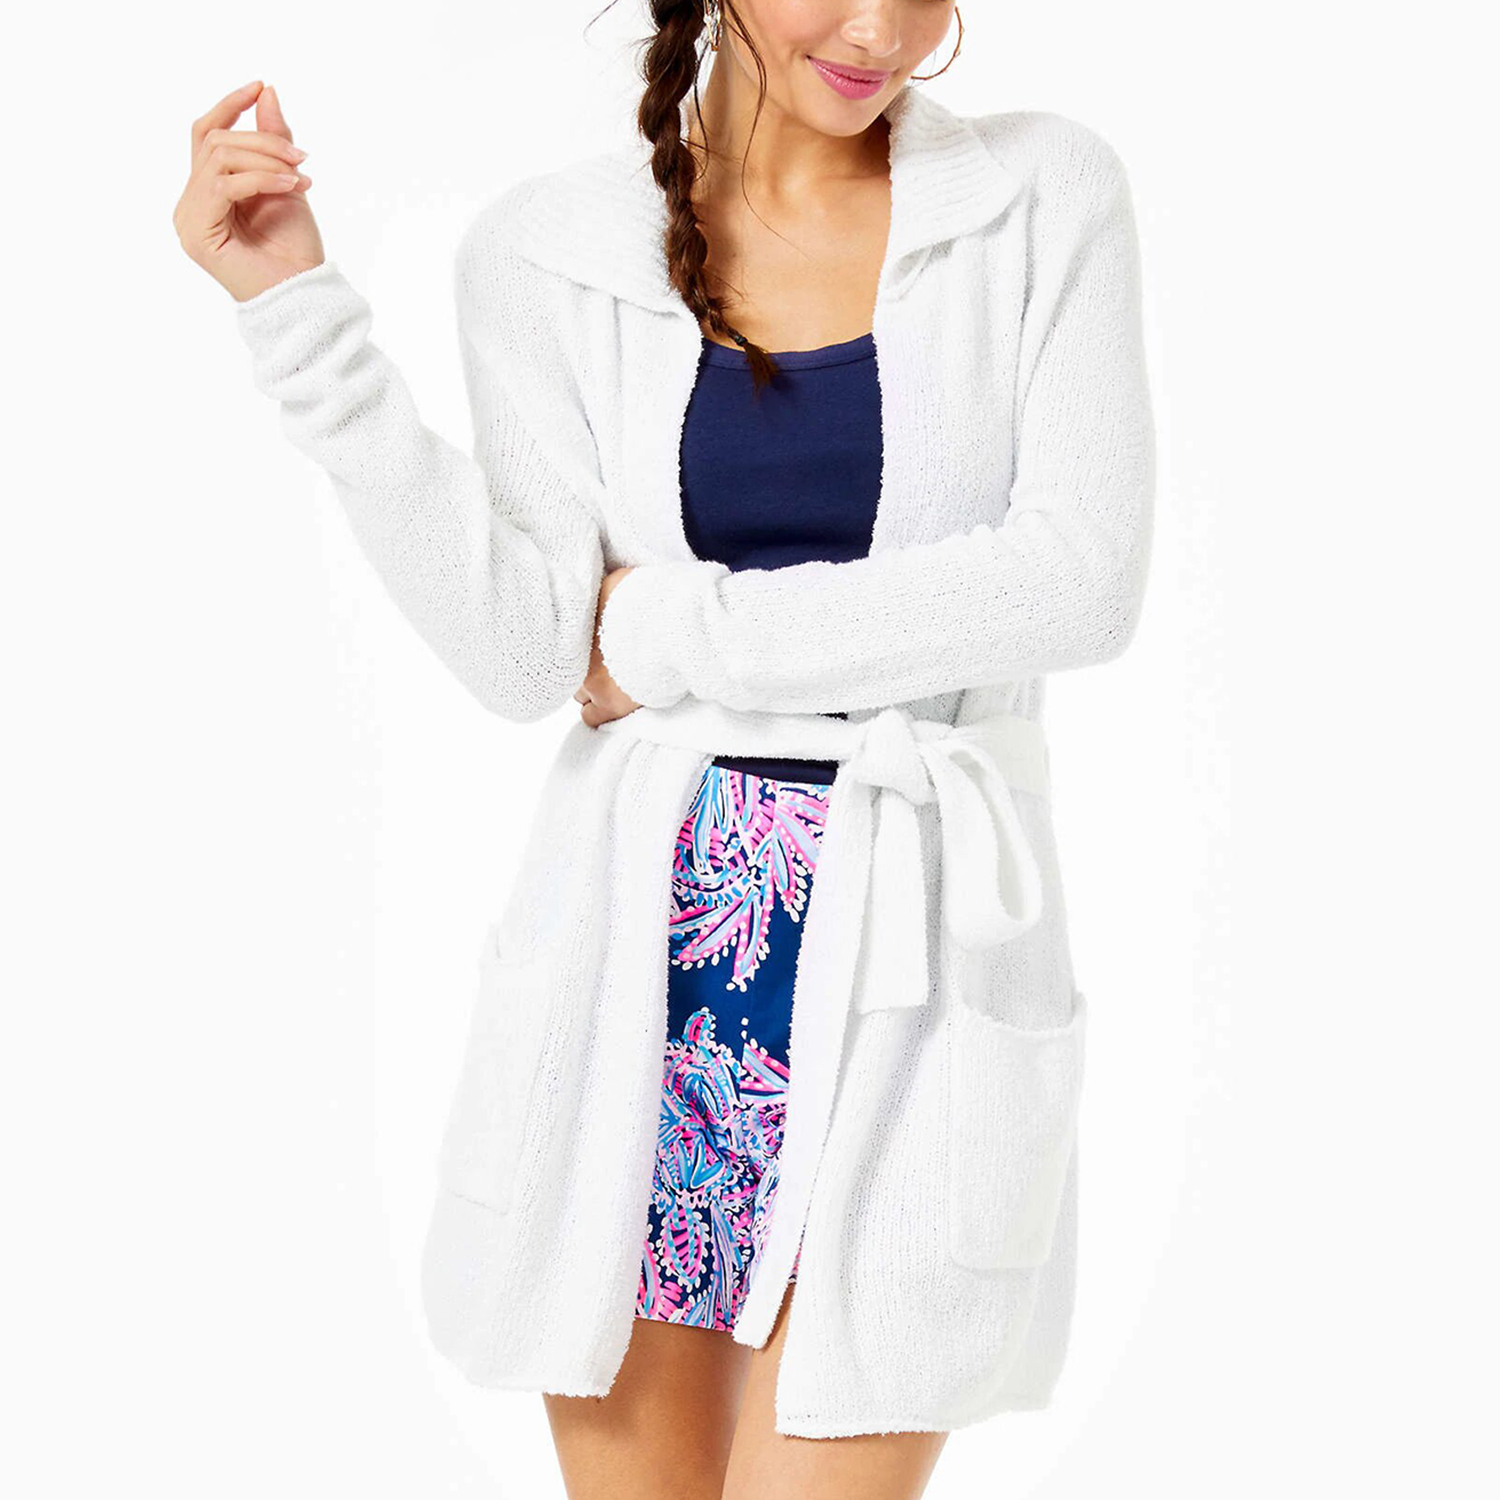 Lilly Pulitzer Clothing